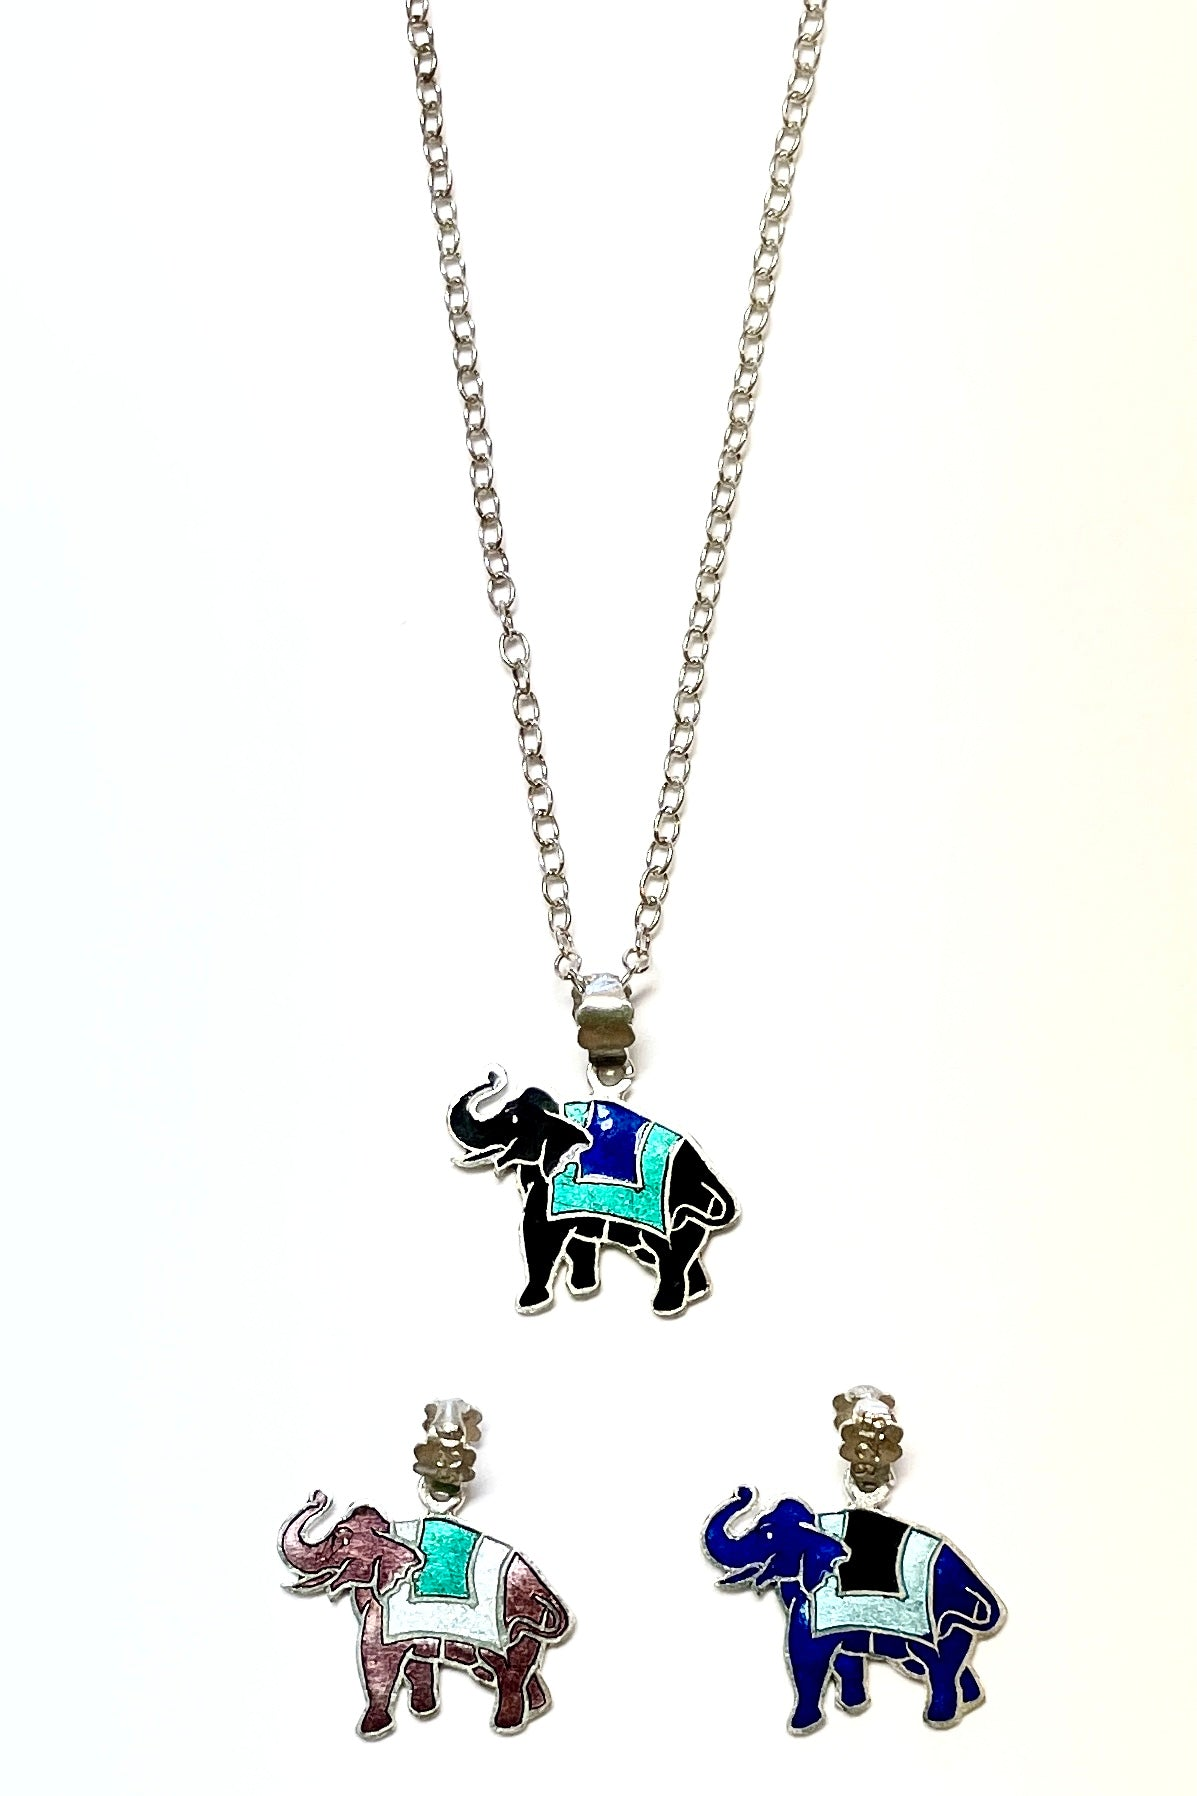 A happy colourful elephant pendant made of silver with bright enamel applied.